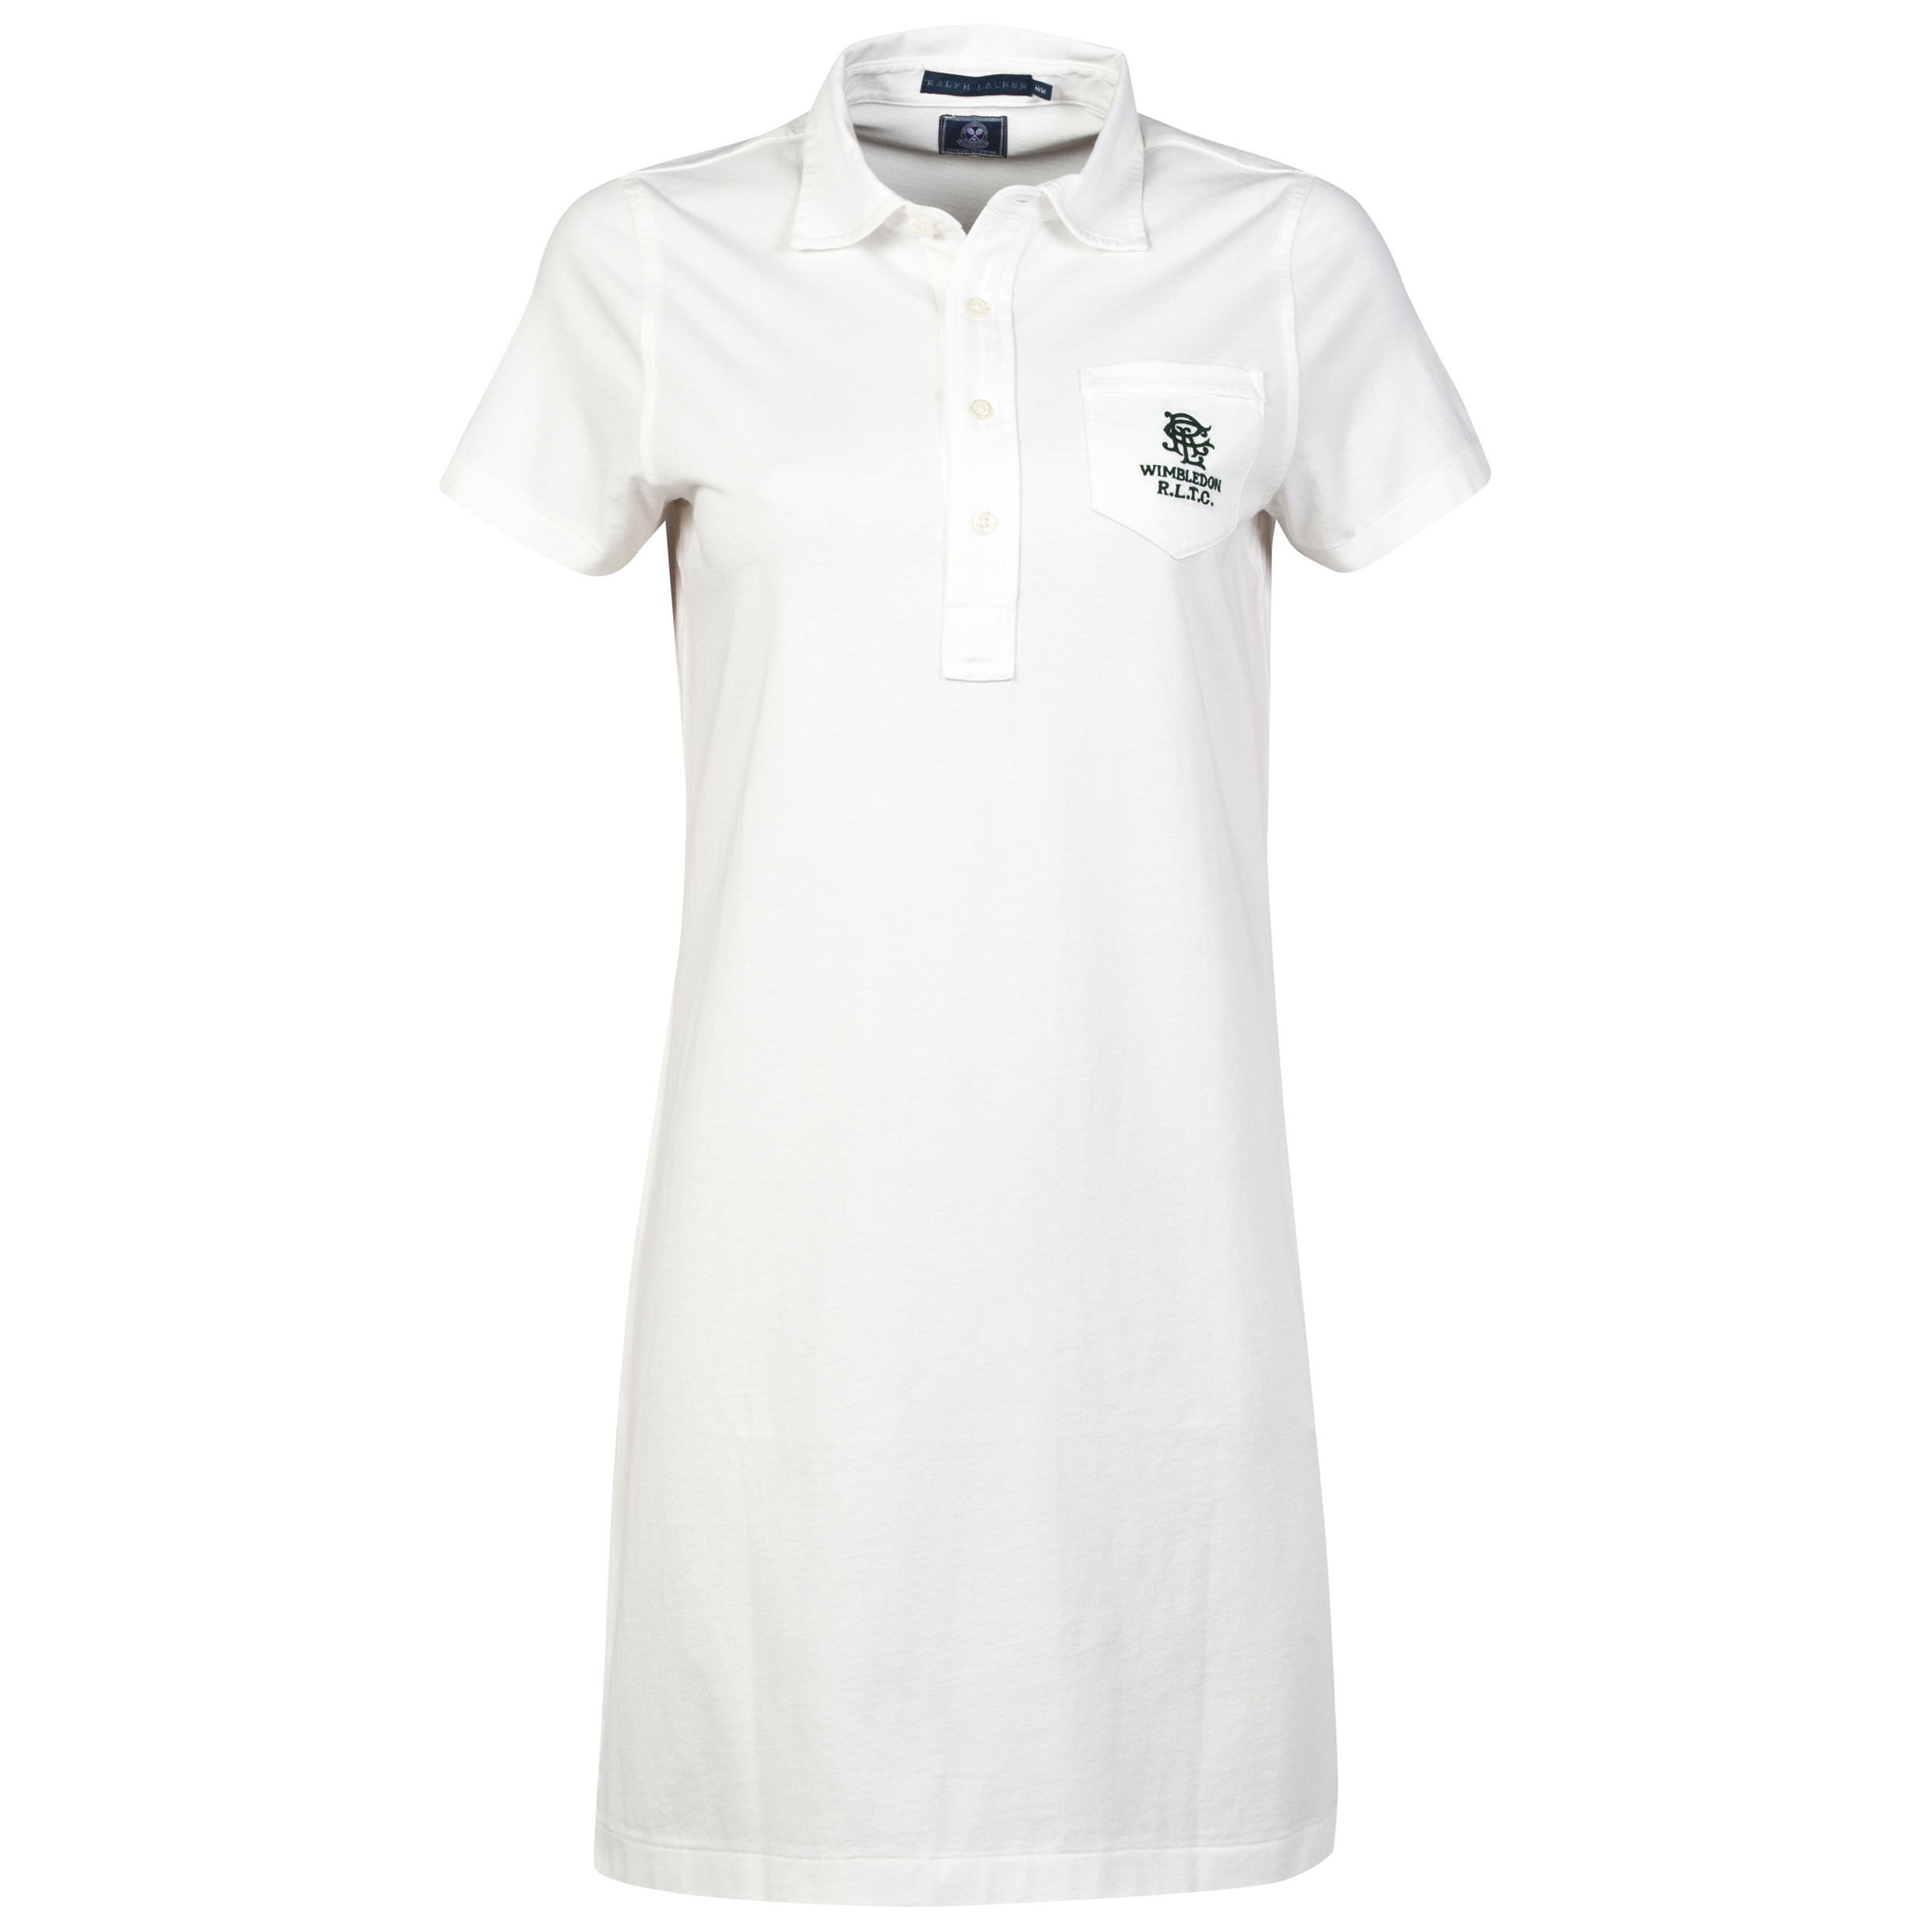 Wimbledon Ralph Lauren Wimbledon Midny Shirt Dress - Womens Deckwash White